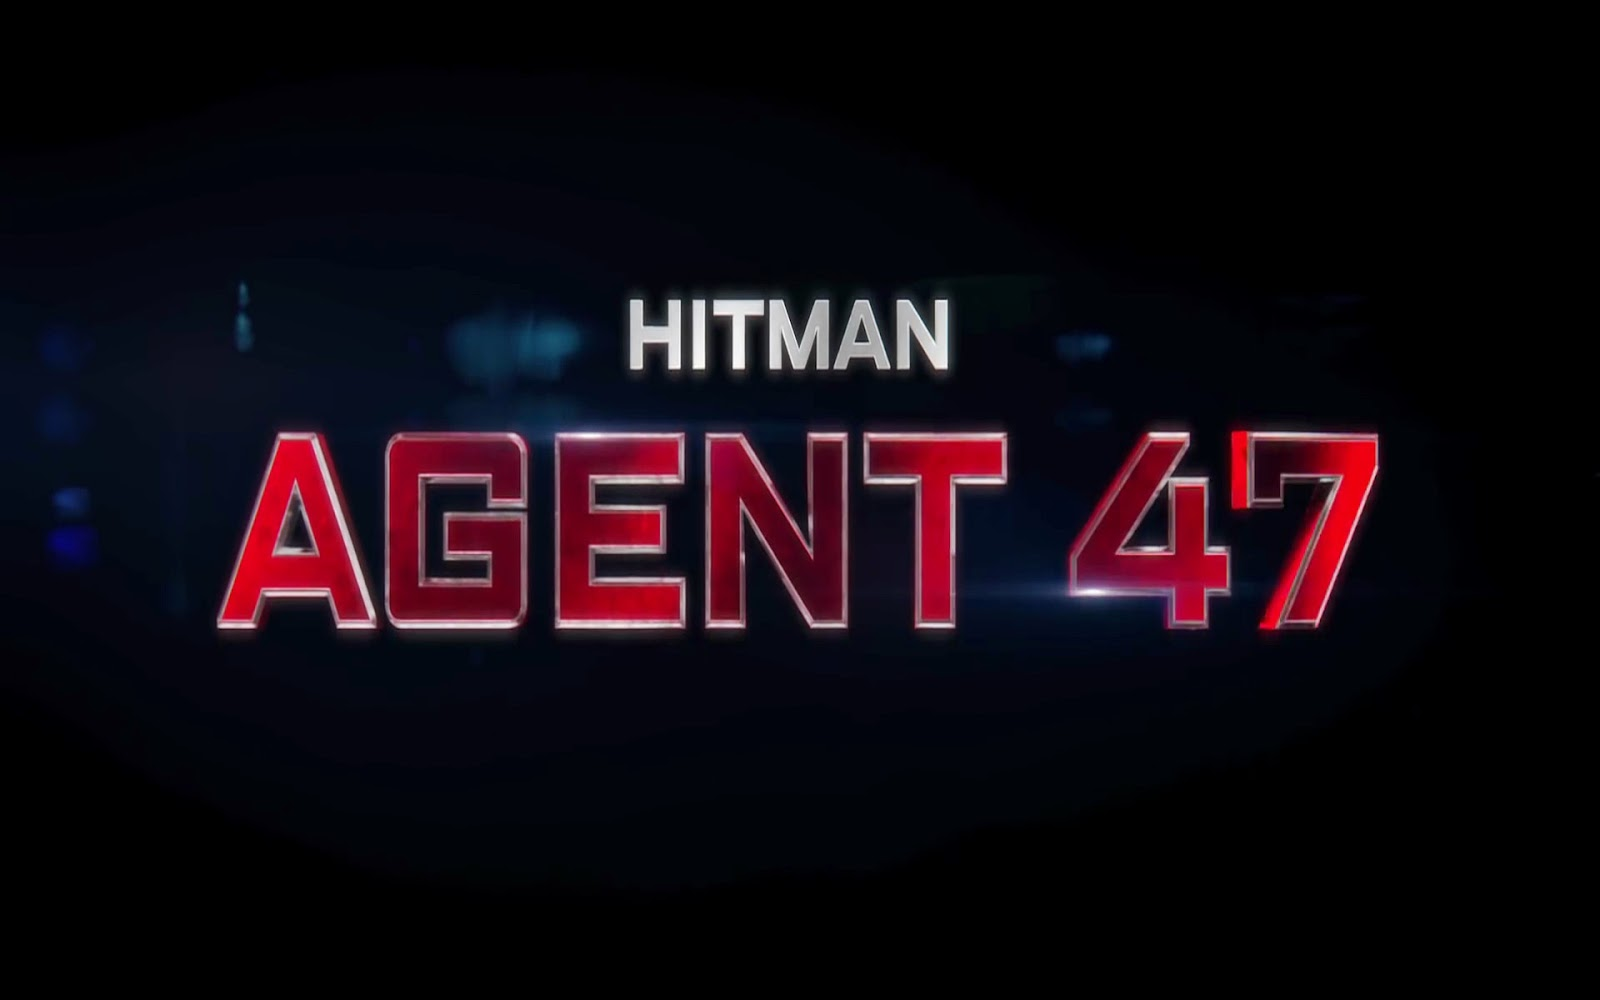 Hitman Agent 47 2015 Niazimovies Blogspot Com Watch